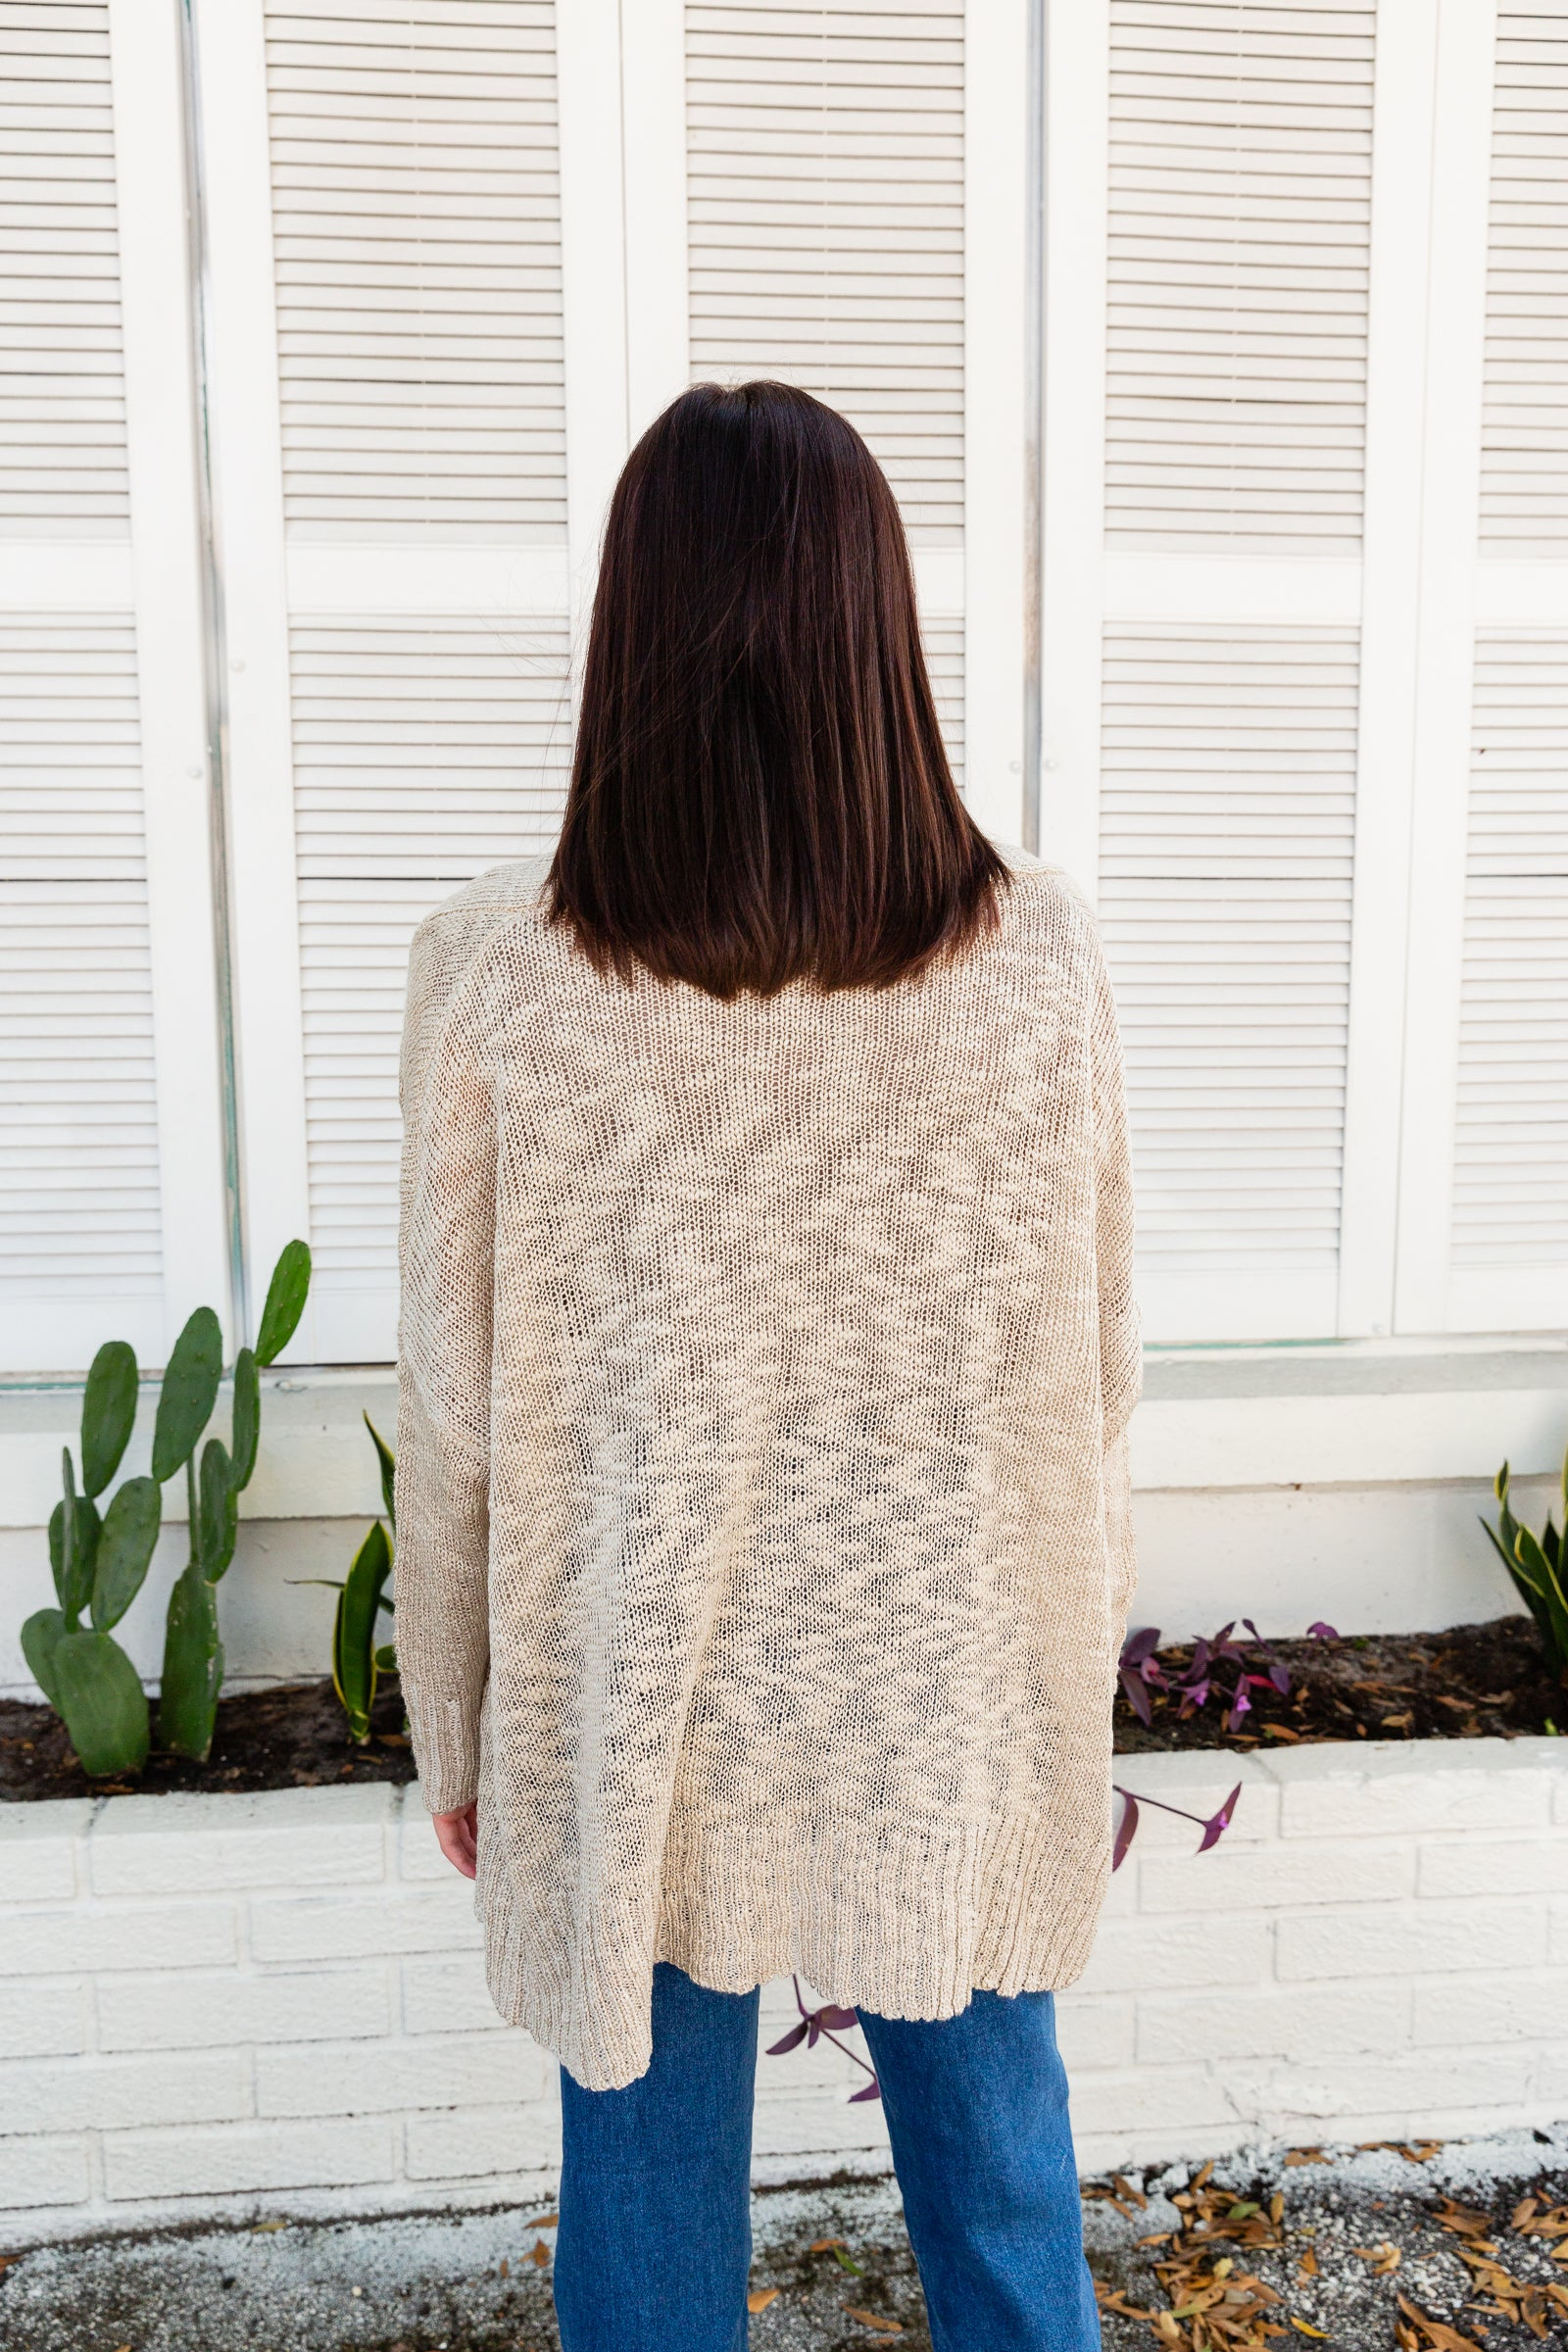 This neutral cardigan has long and loose sleeves that attach to an oversized bodice silhouette with toggle closures down the center of the overlay.